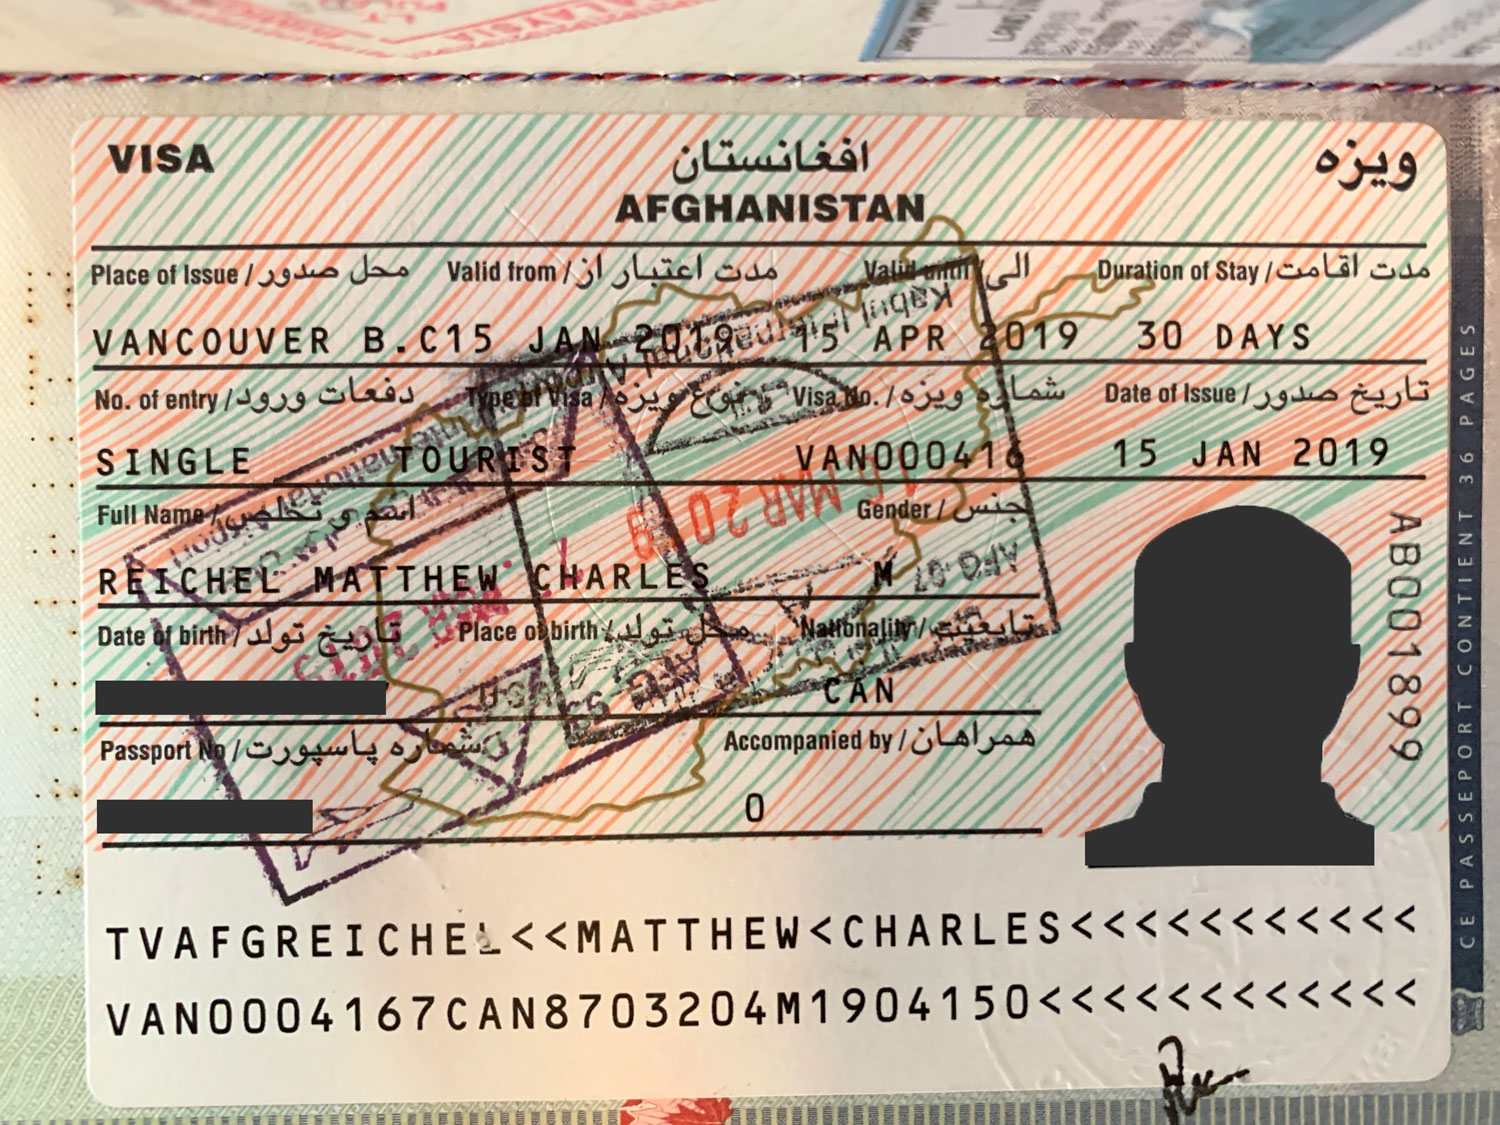 An Afghanistan tourist visa issued in a Canadian passport.